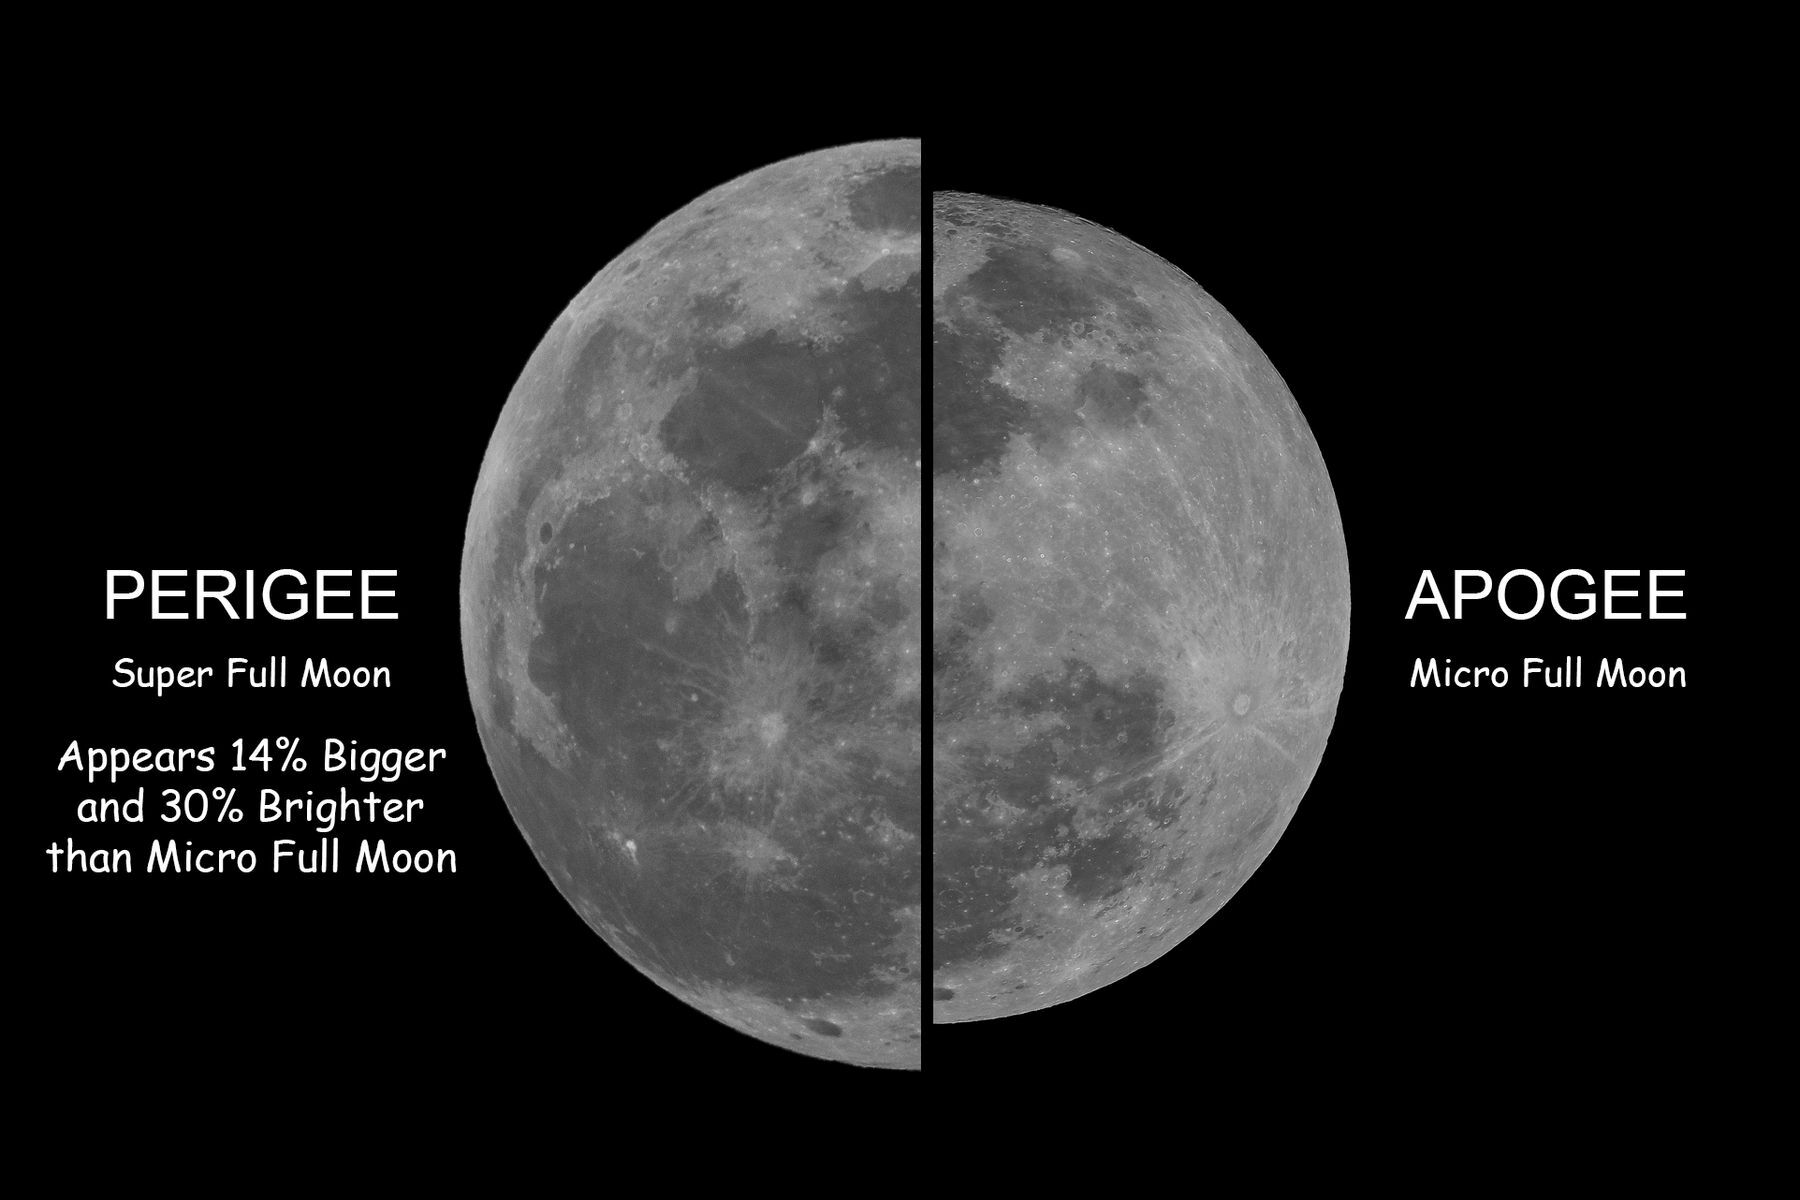 Tuesday's full moon will be a SUPER full moon | News by Thaiger